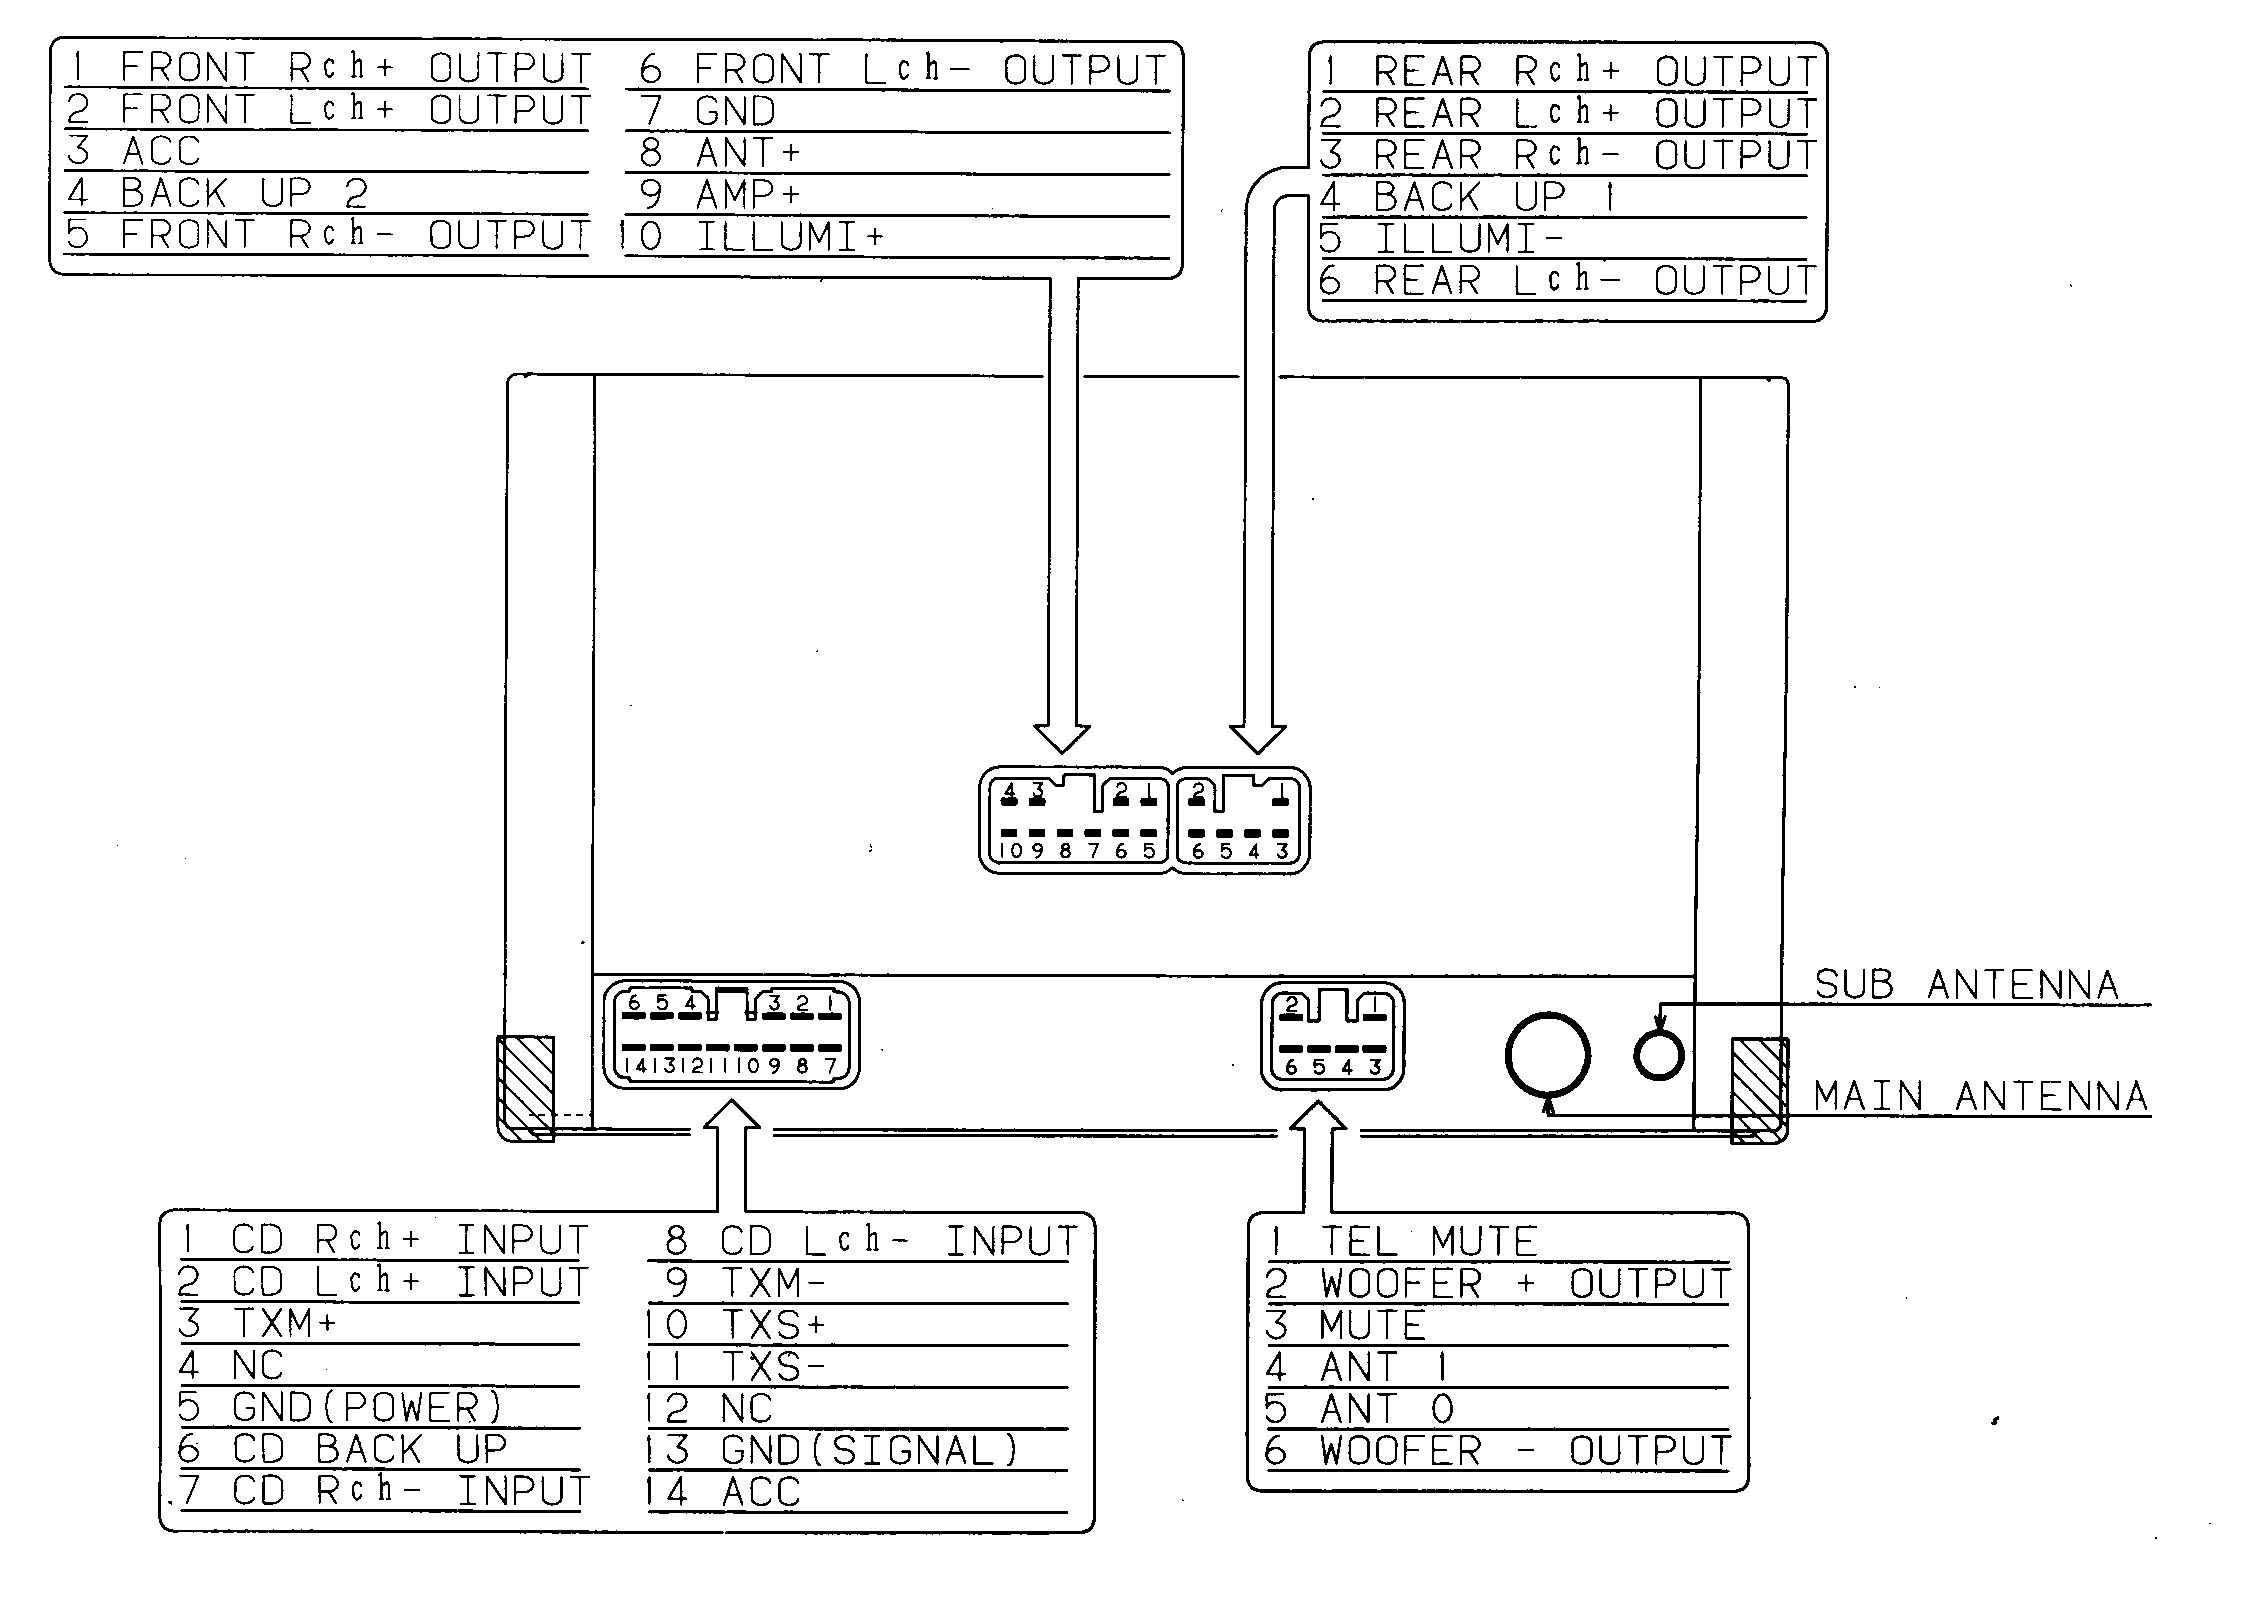 Lexus Car Radio Stereo Audio Wiring Diagram Autoradio Connector Wire Installation Schematic Schema Esquema De Conexiones Stecker Konektor Connecteur Cable